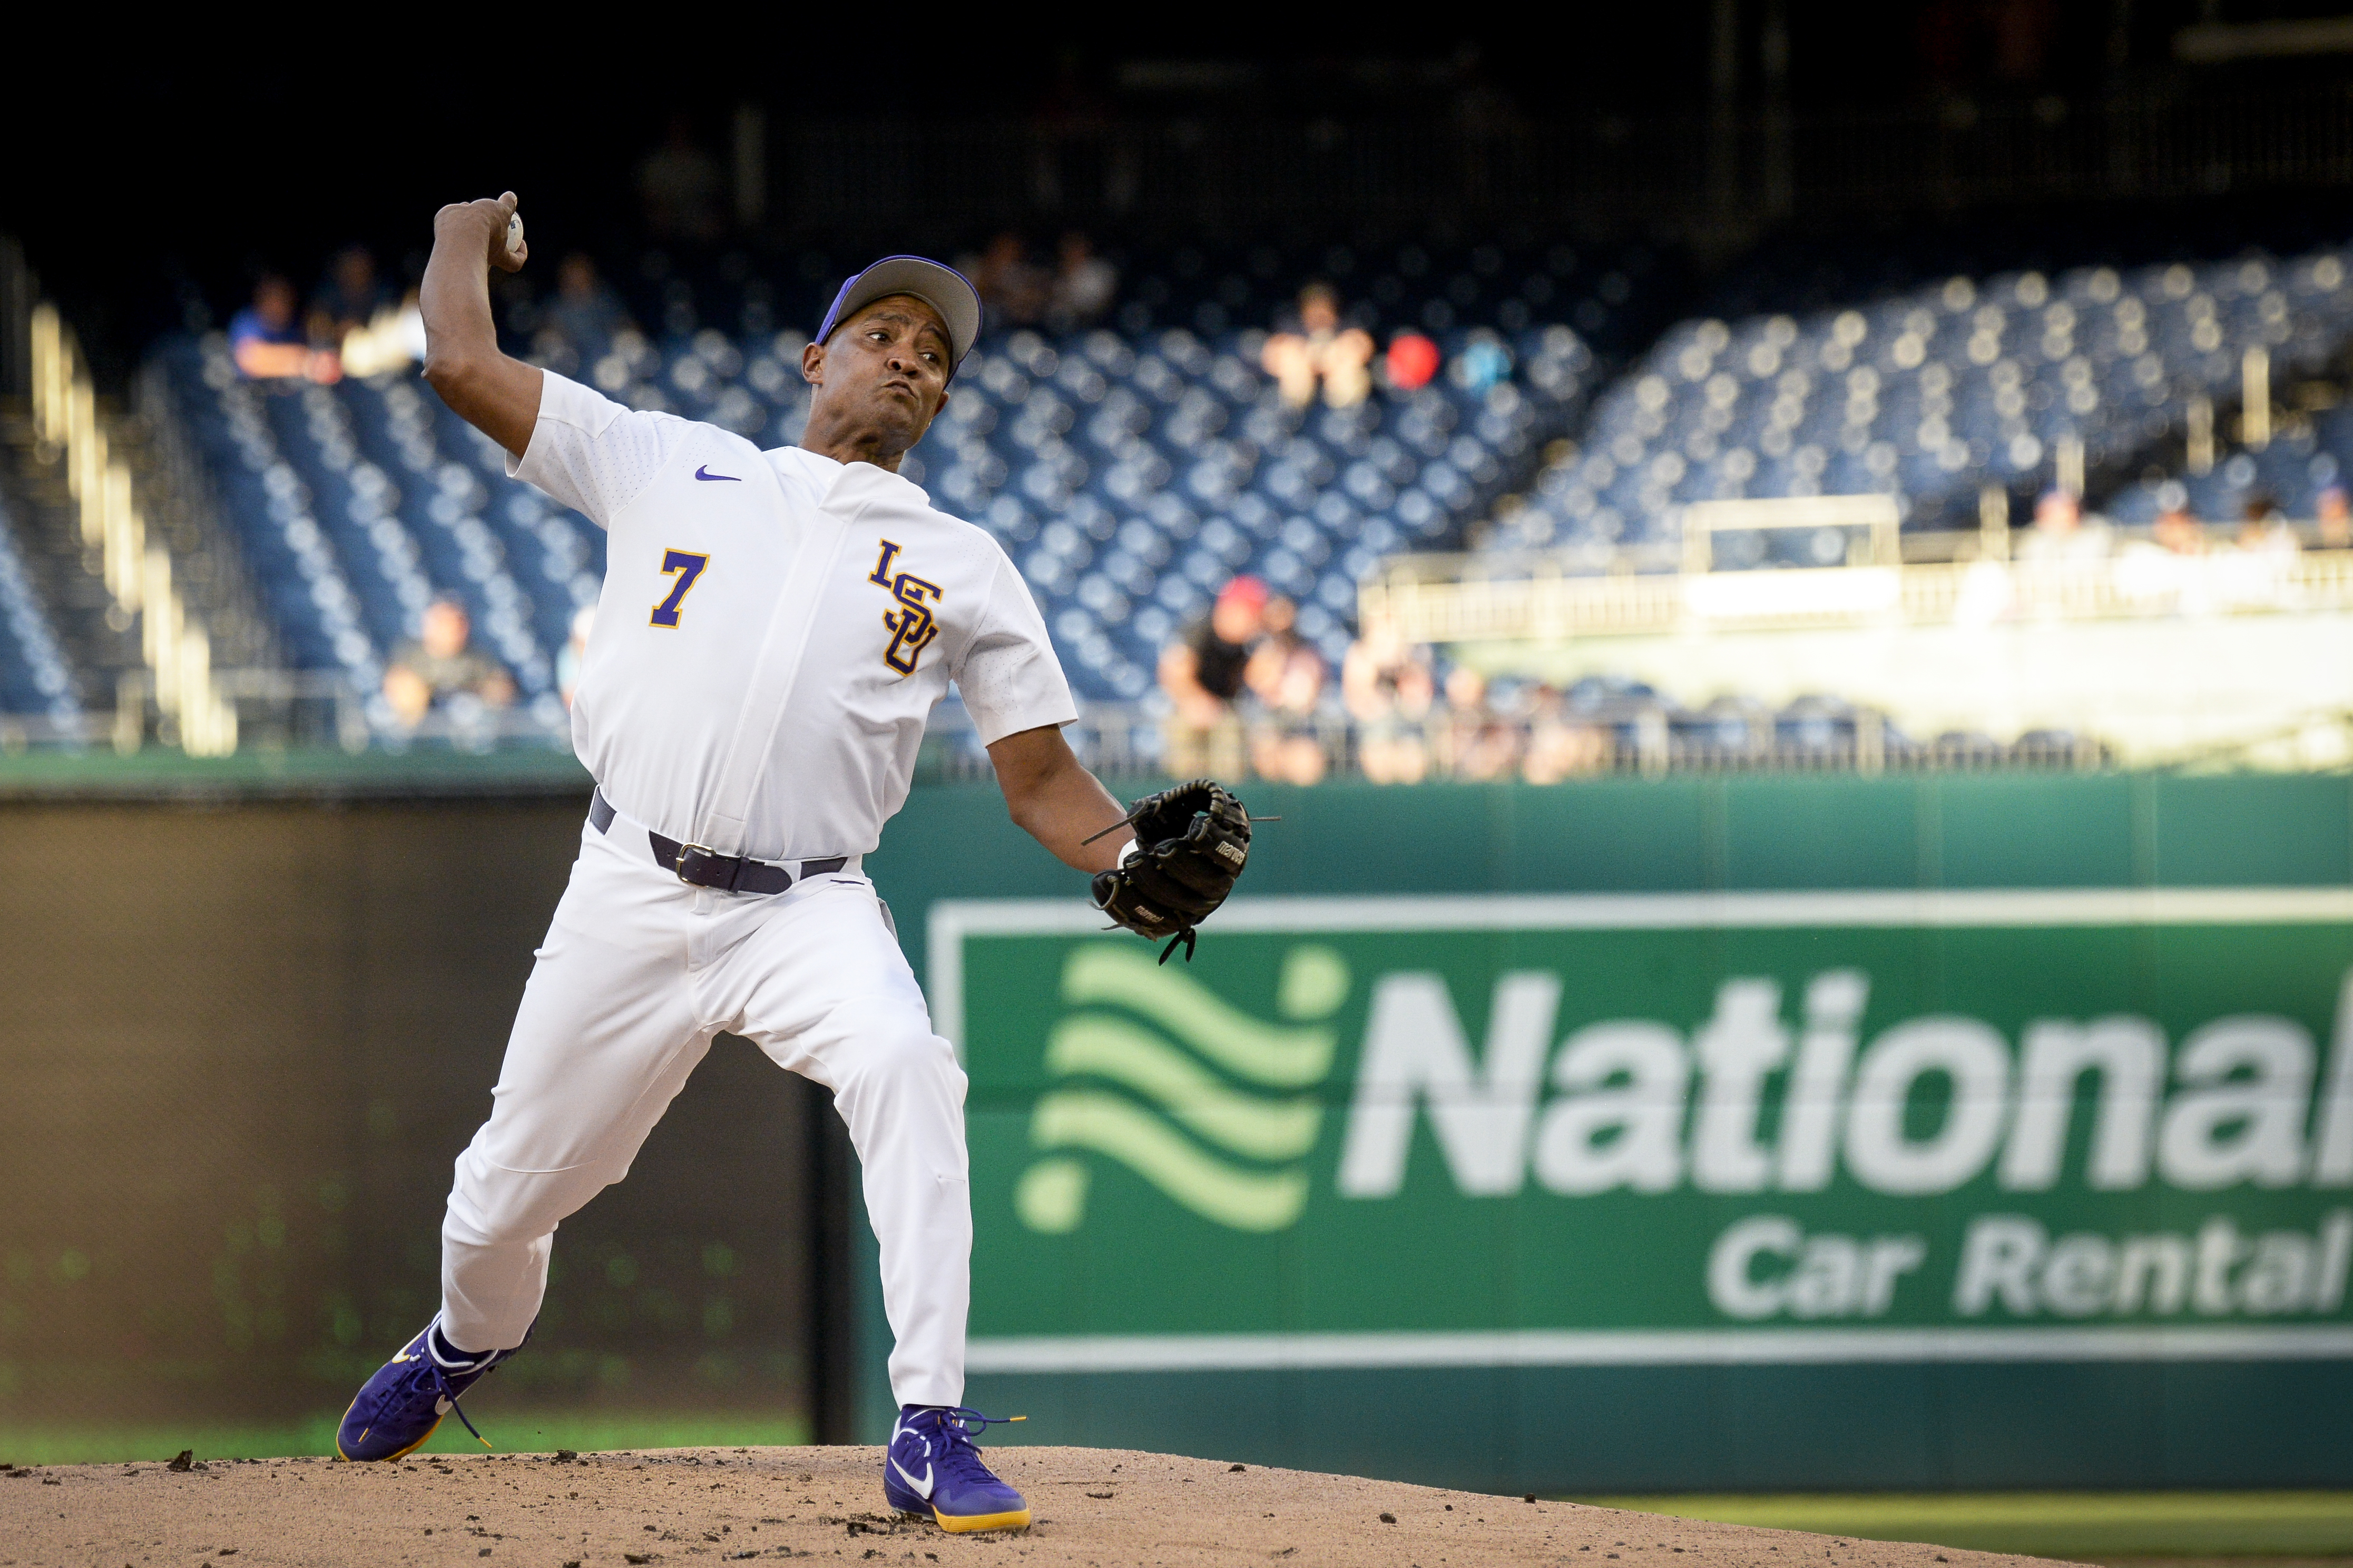 UNITED STATES - JUNE 26: Rep. Cedric Richmond, D-La., throws a pitch during the 58th annual Congressional Baseball Game at Nationals Park on Wednesday June 26, 2019. (Photo by Caroline Brehman/CQ Roll Call)